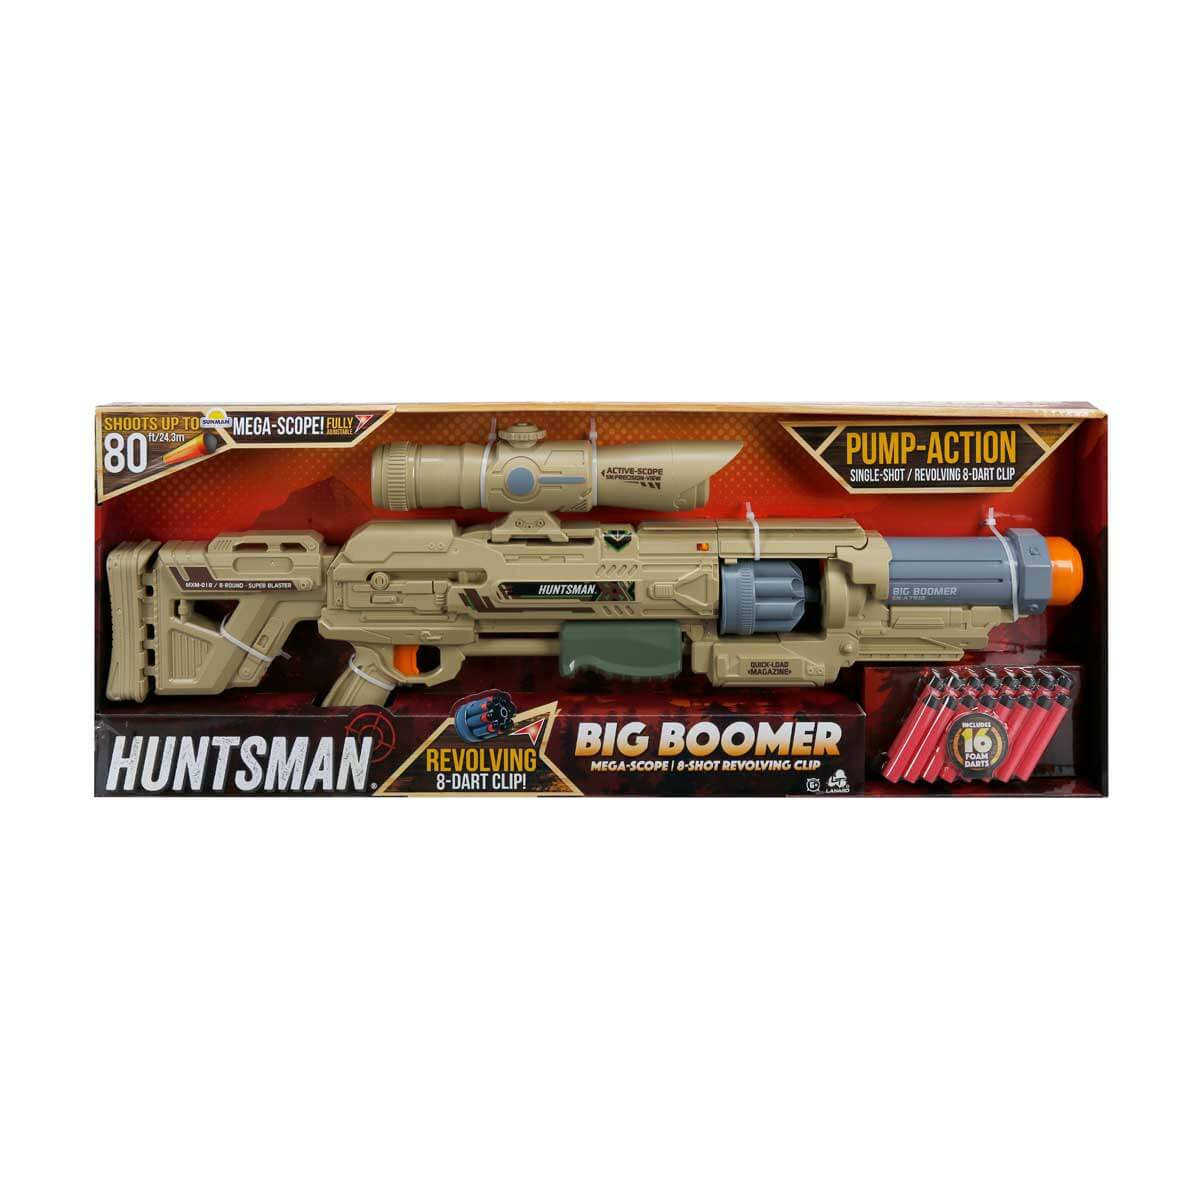 Huntsman - Big Boomer (91954)